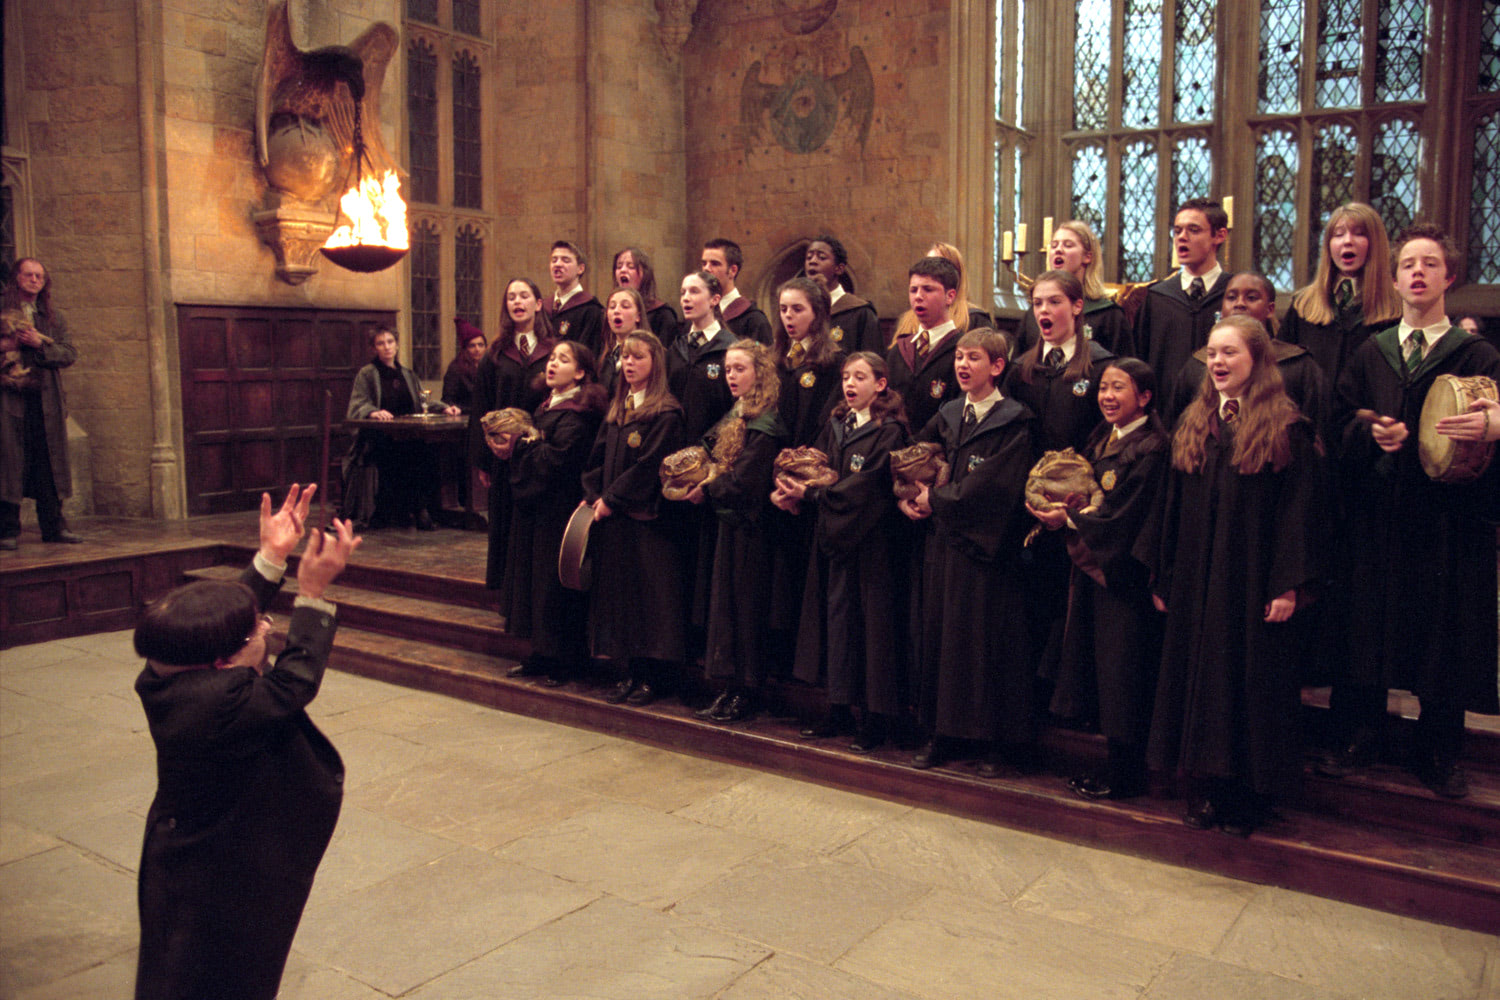 The Hogwarts choir sings